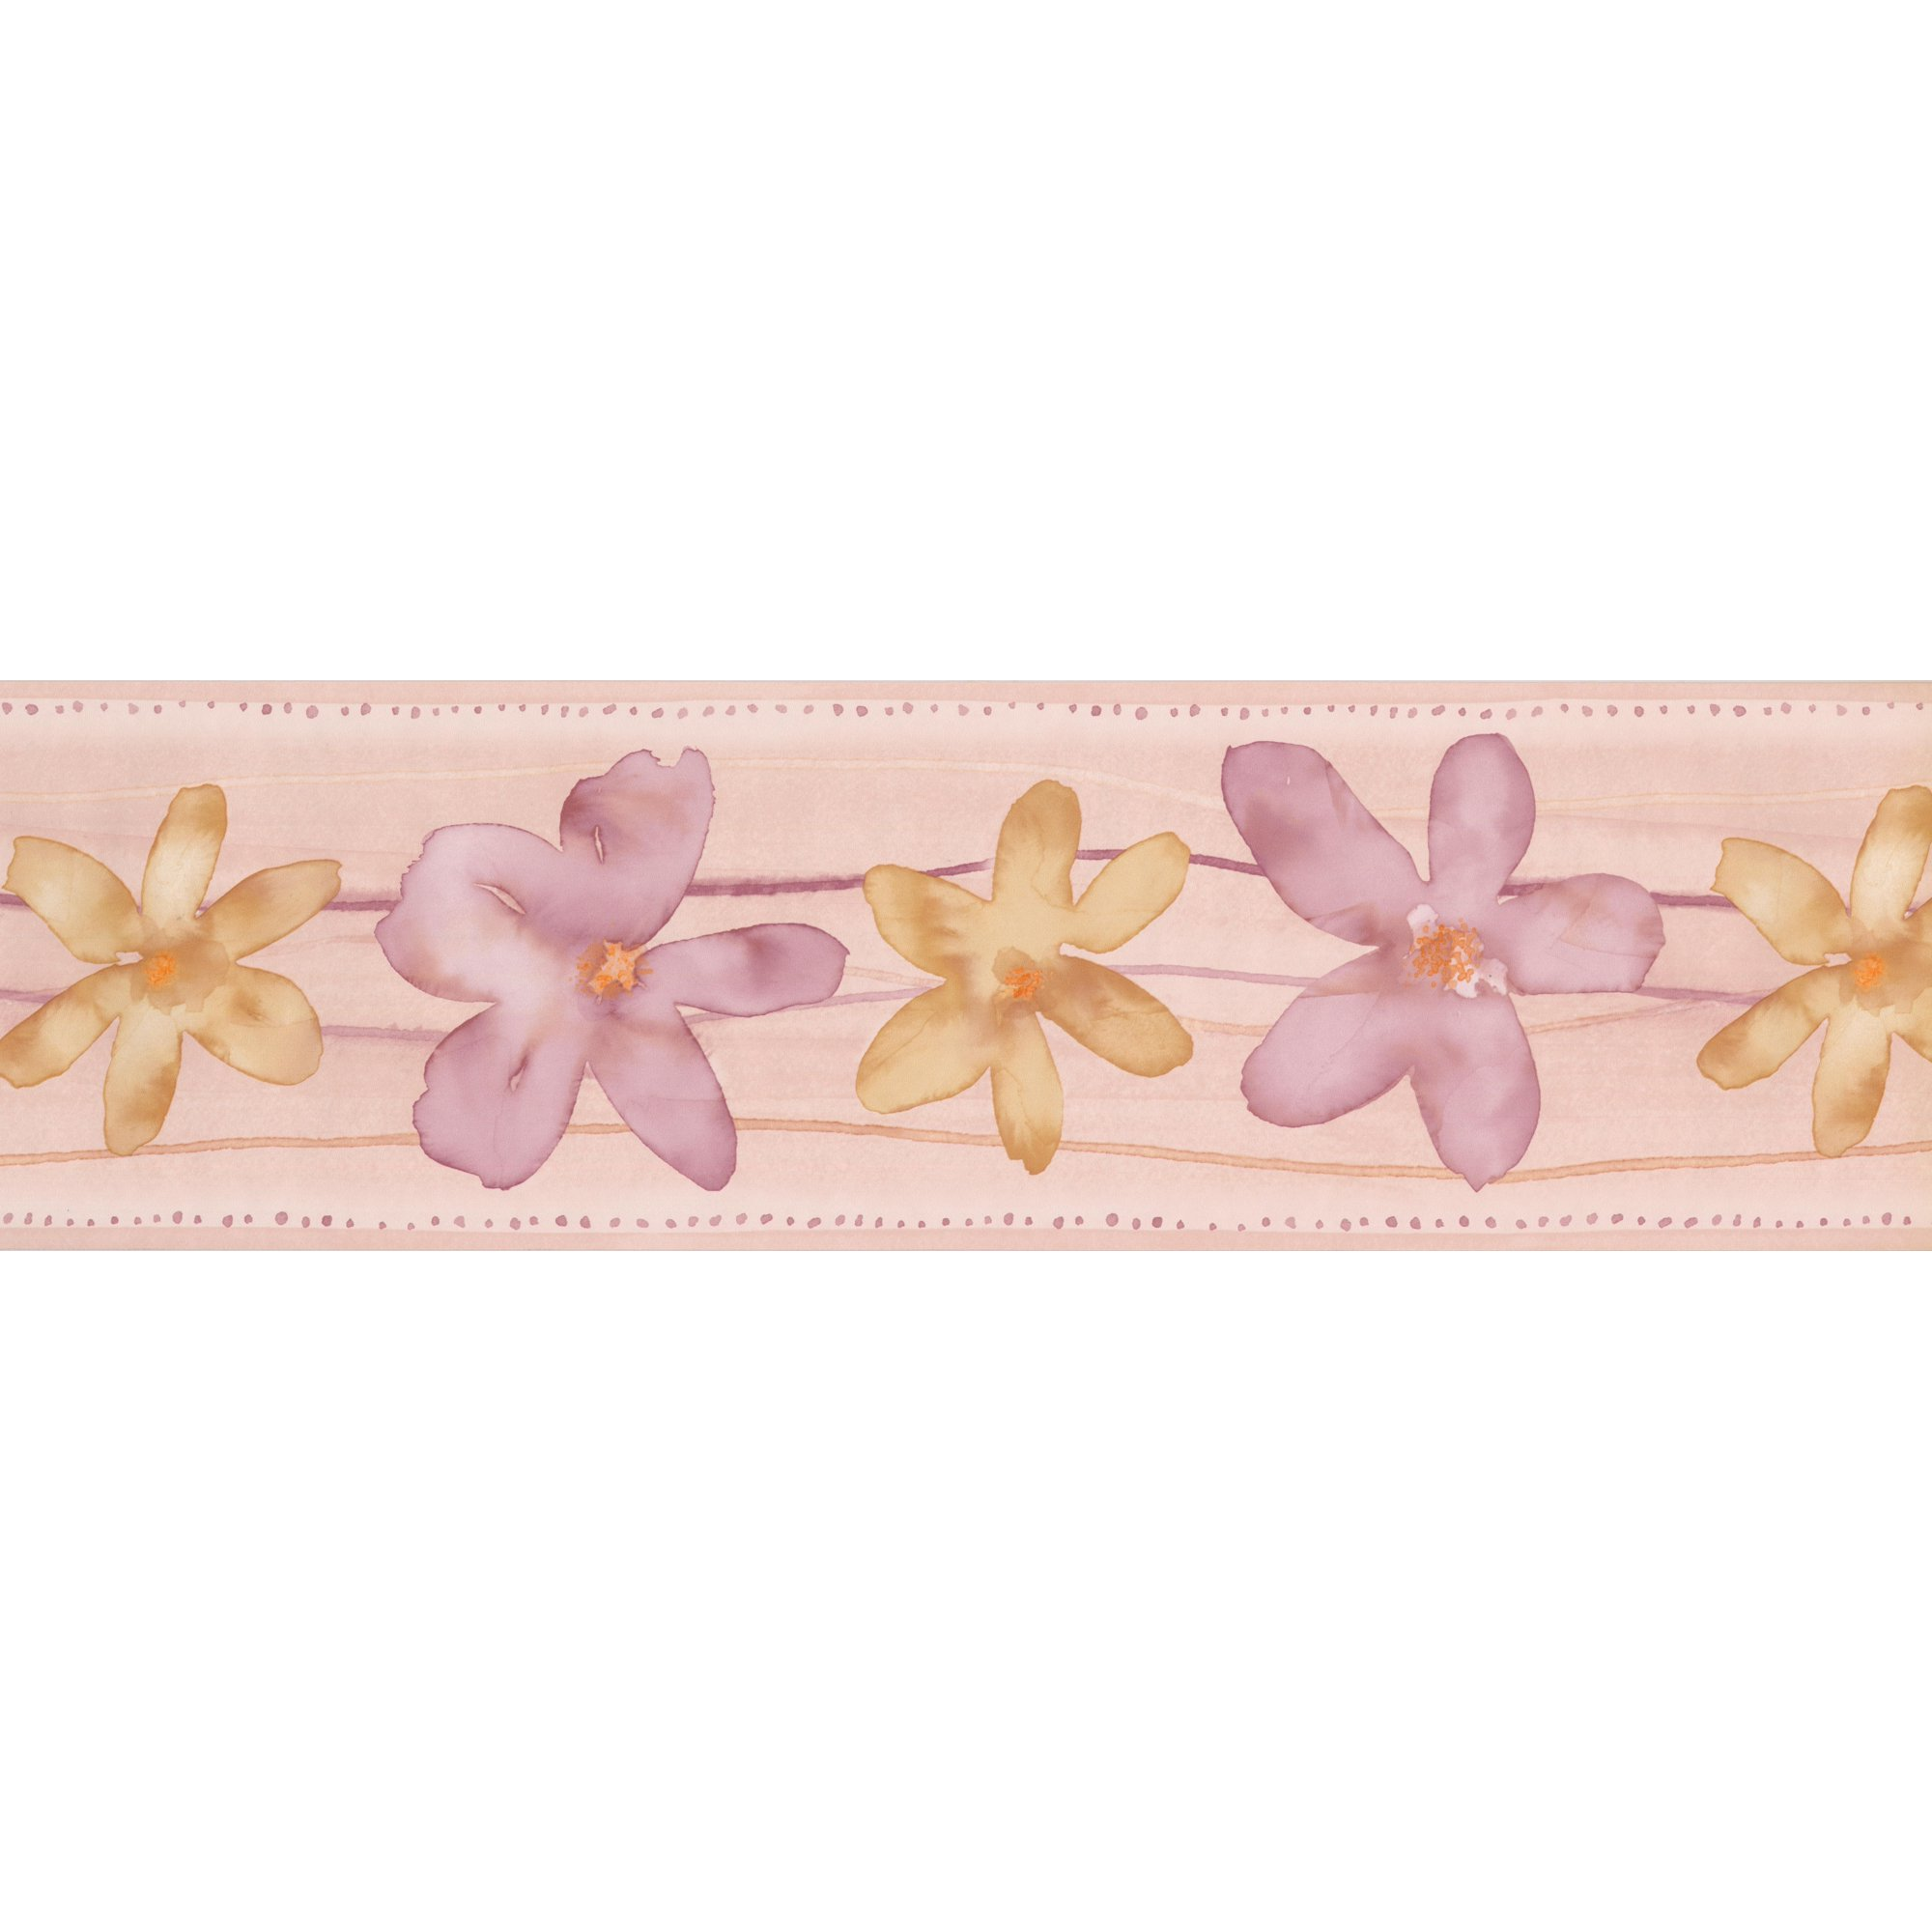 Yellow Lilac Flowers Bathroom Floral Wallpaper Border Paint By